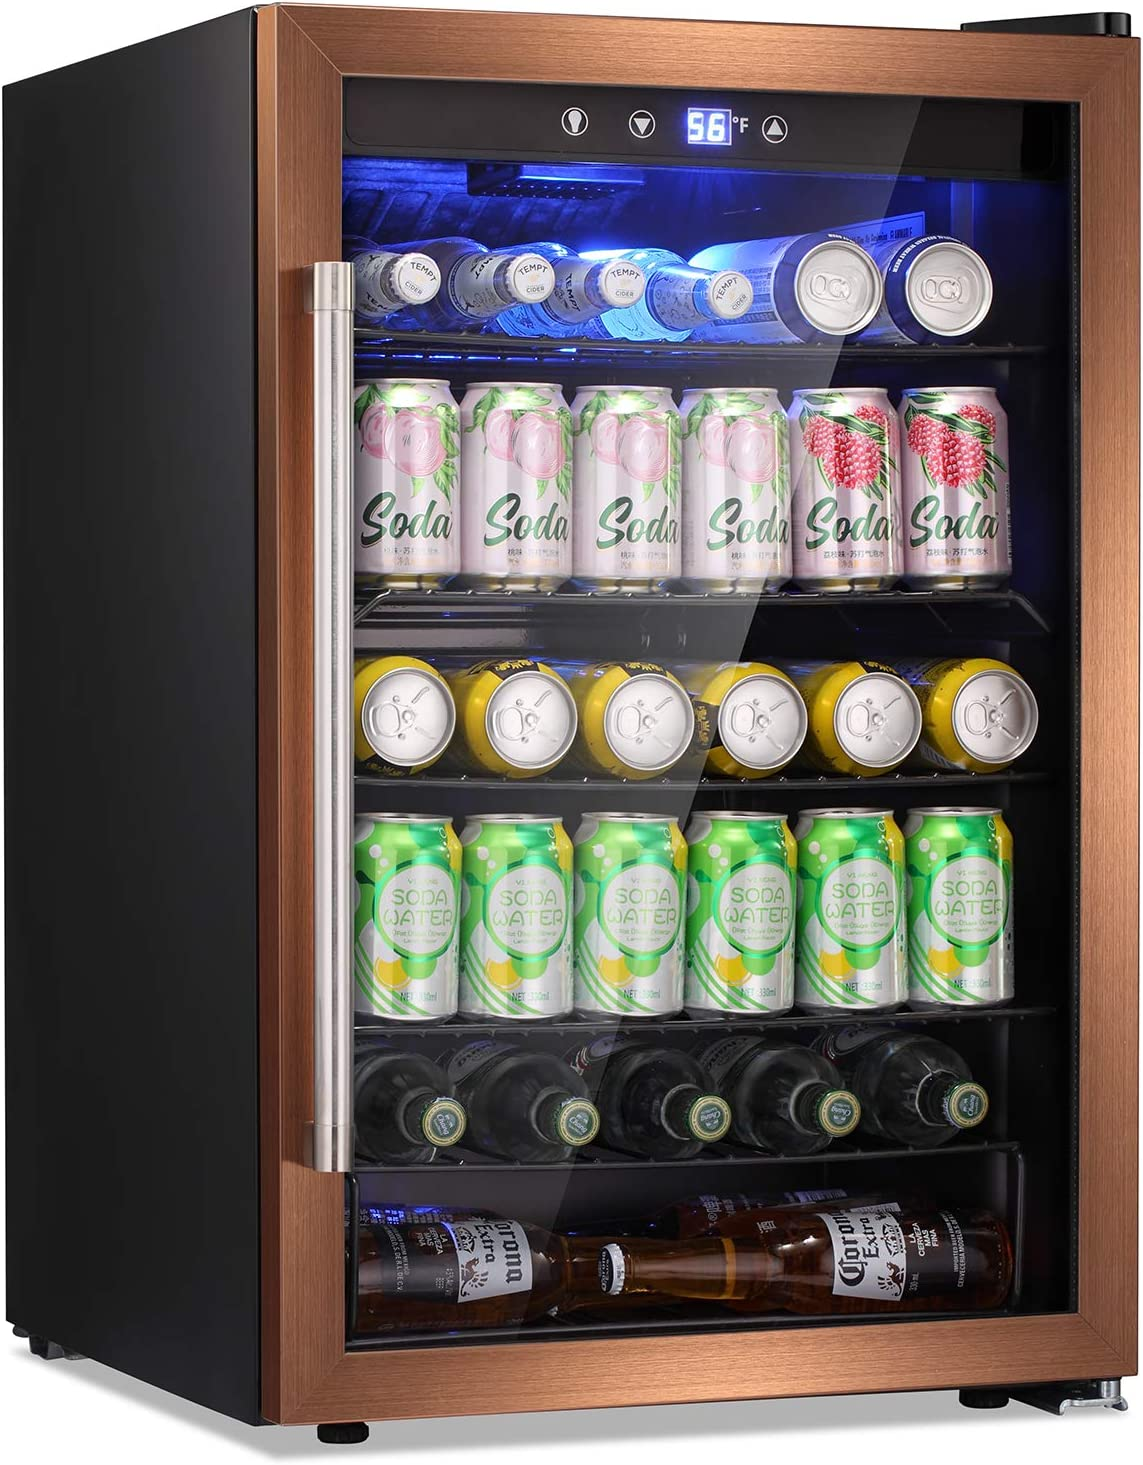 Antarctic Star Beverage Refrigerator Cooler - 145 Can Mini Fridge Glass Door for Soda Beer or Wine Small Drink Dispenser Clear Front for Home, Office or Bar, black,4.5cu.ft. Gold